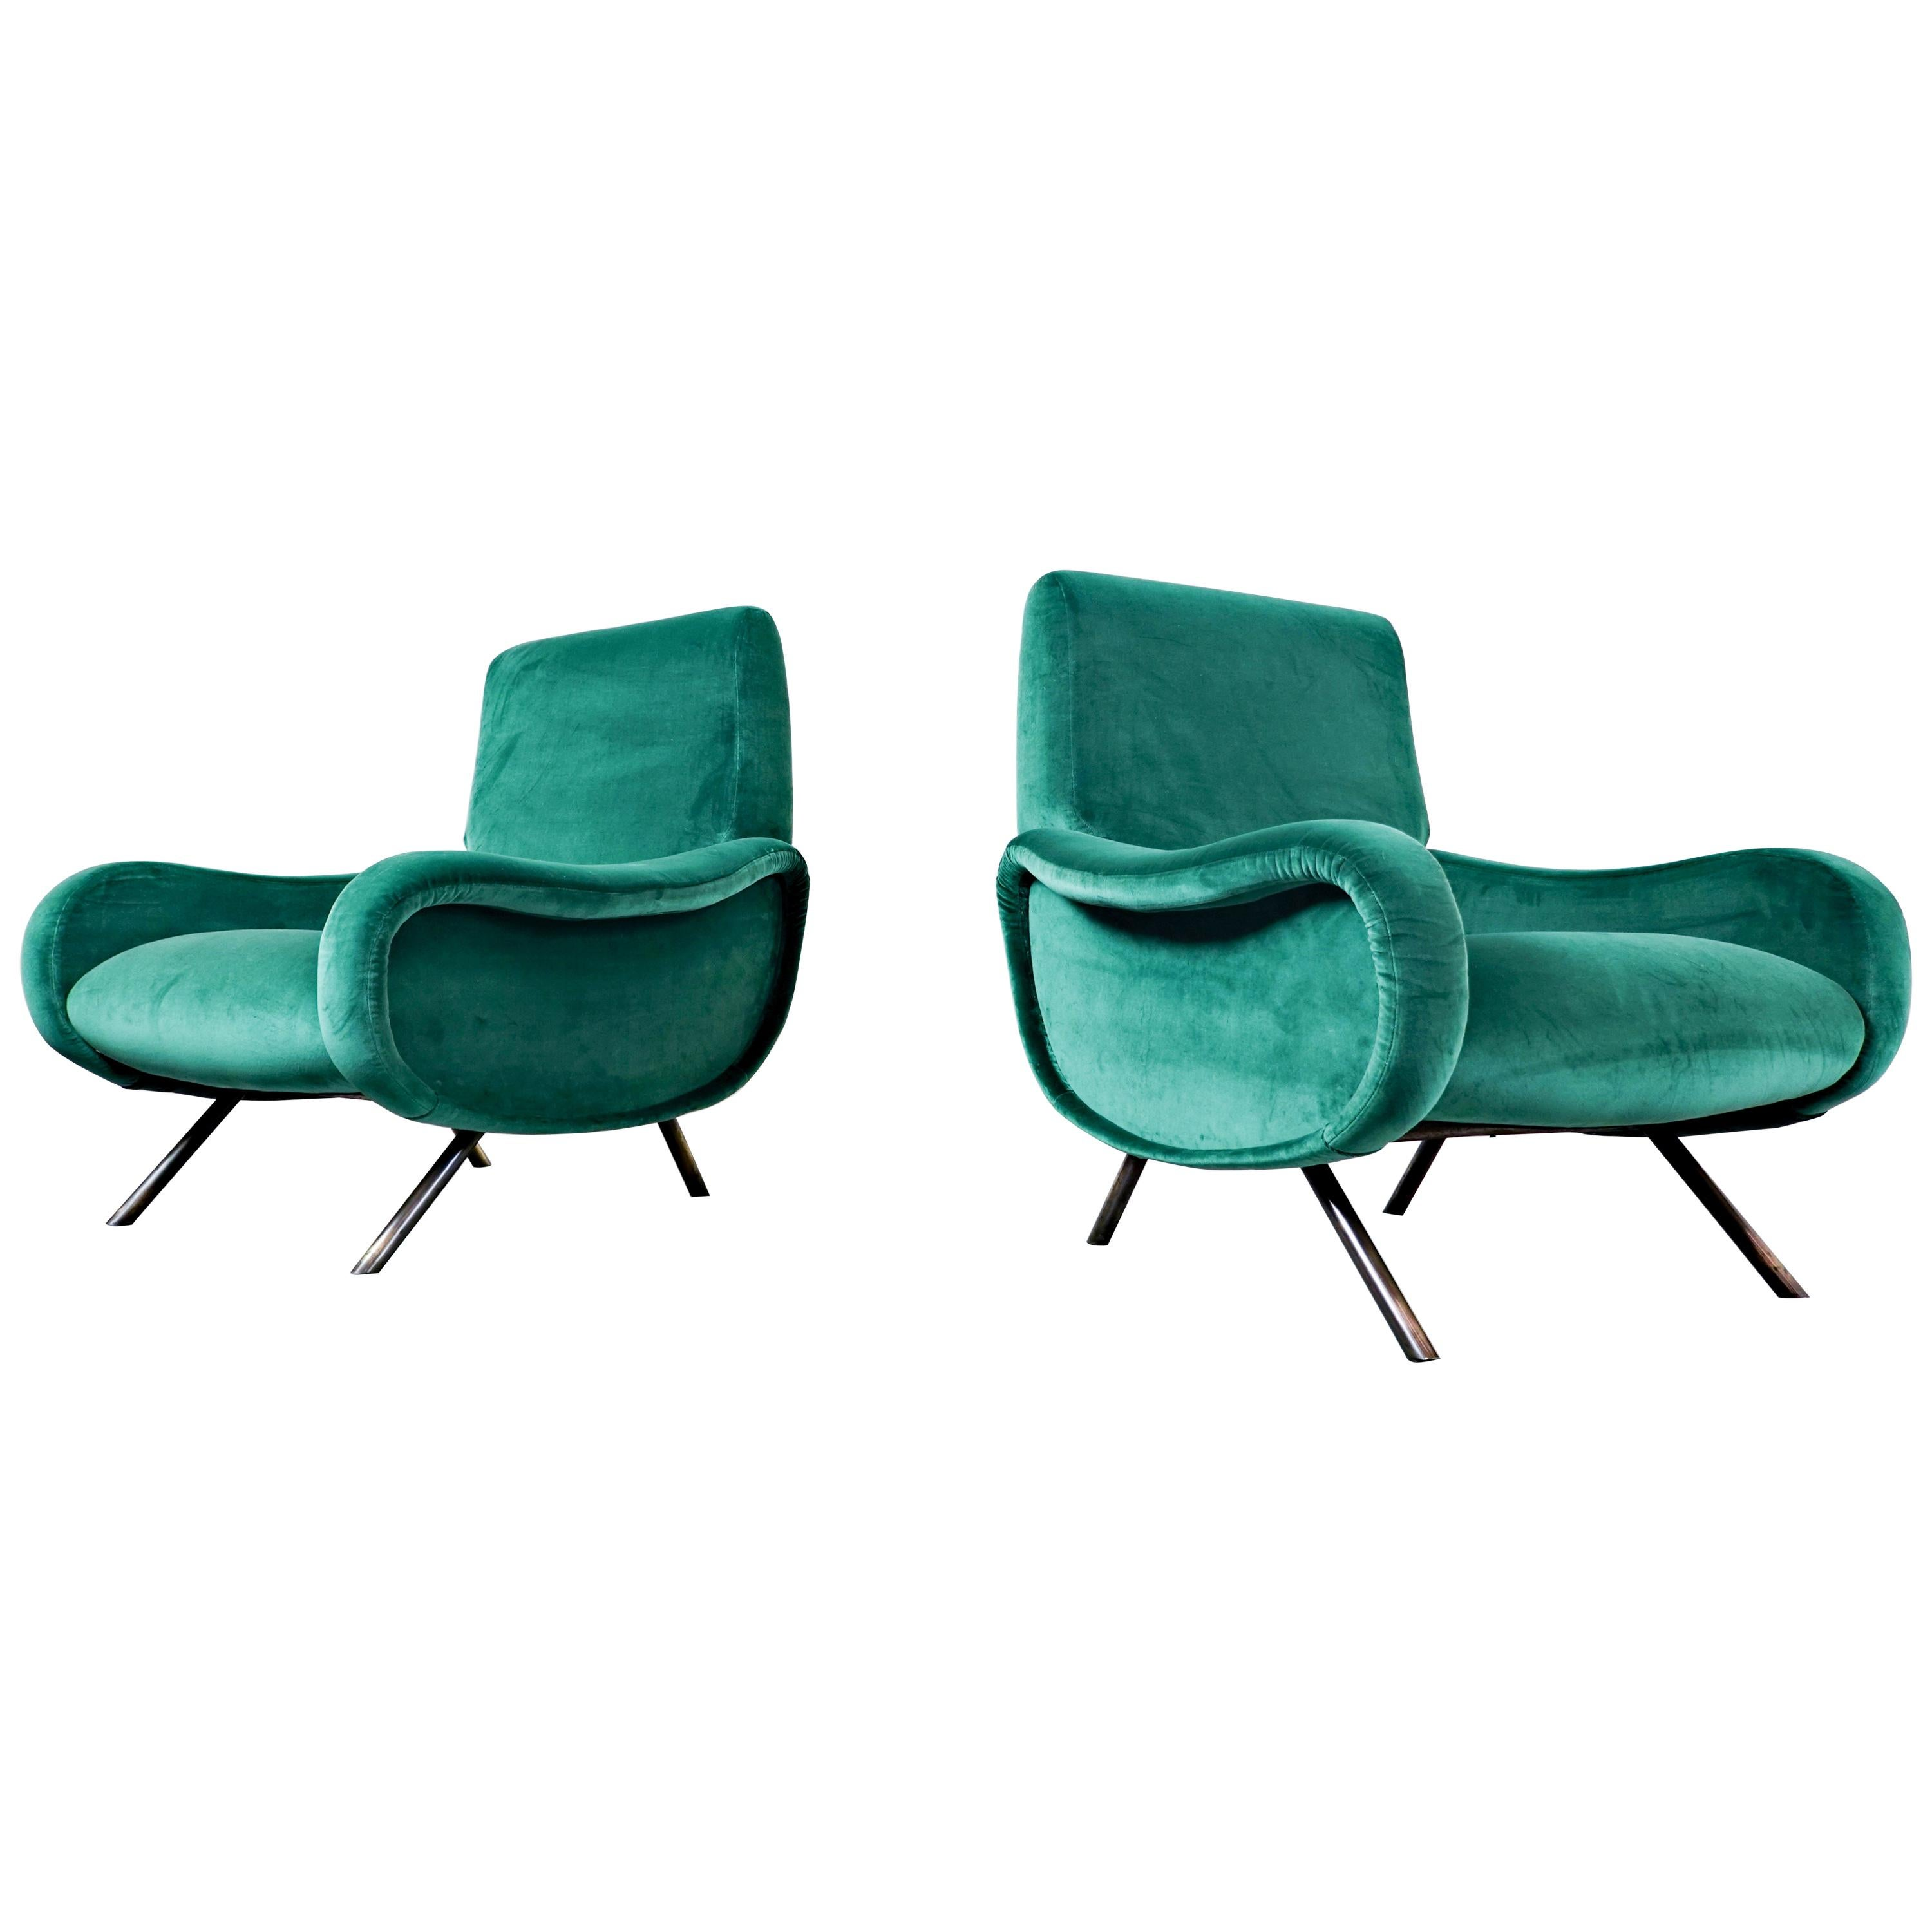 """Pair of Mid-Century Modern """"Lady"""" Armchairs by Marco Zanuso, Green Velvet 1950s"""